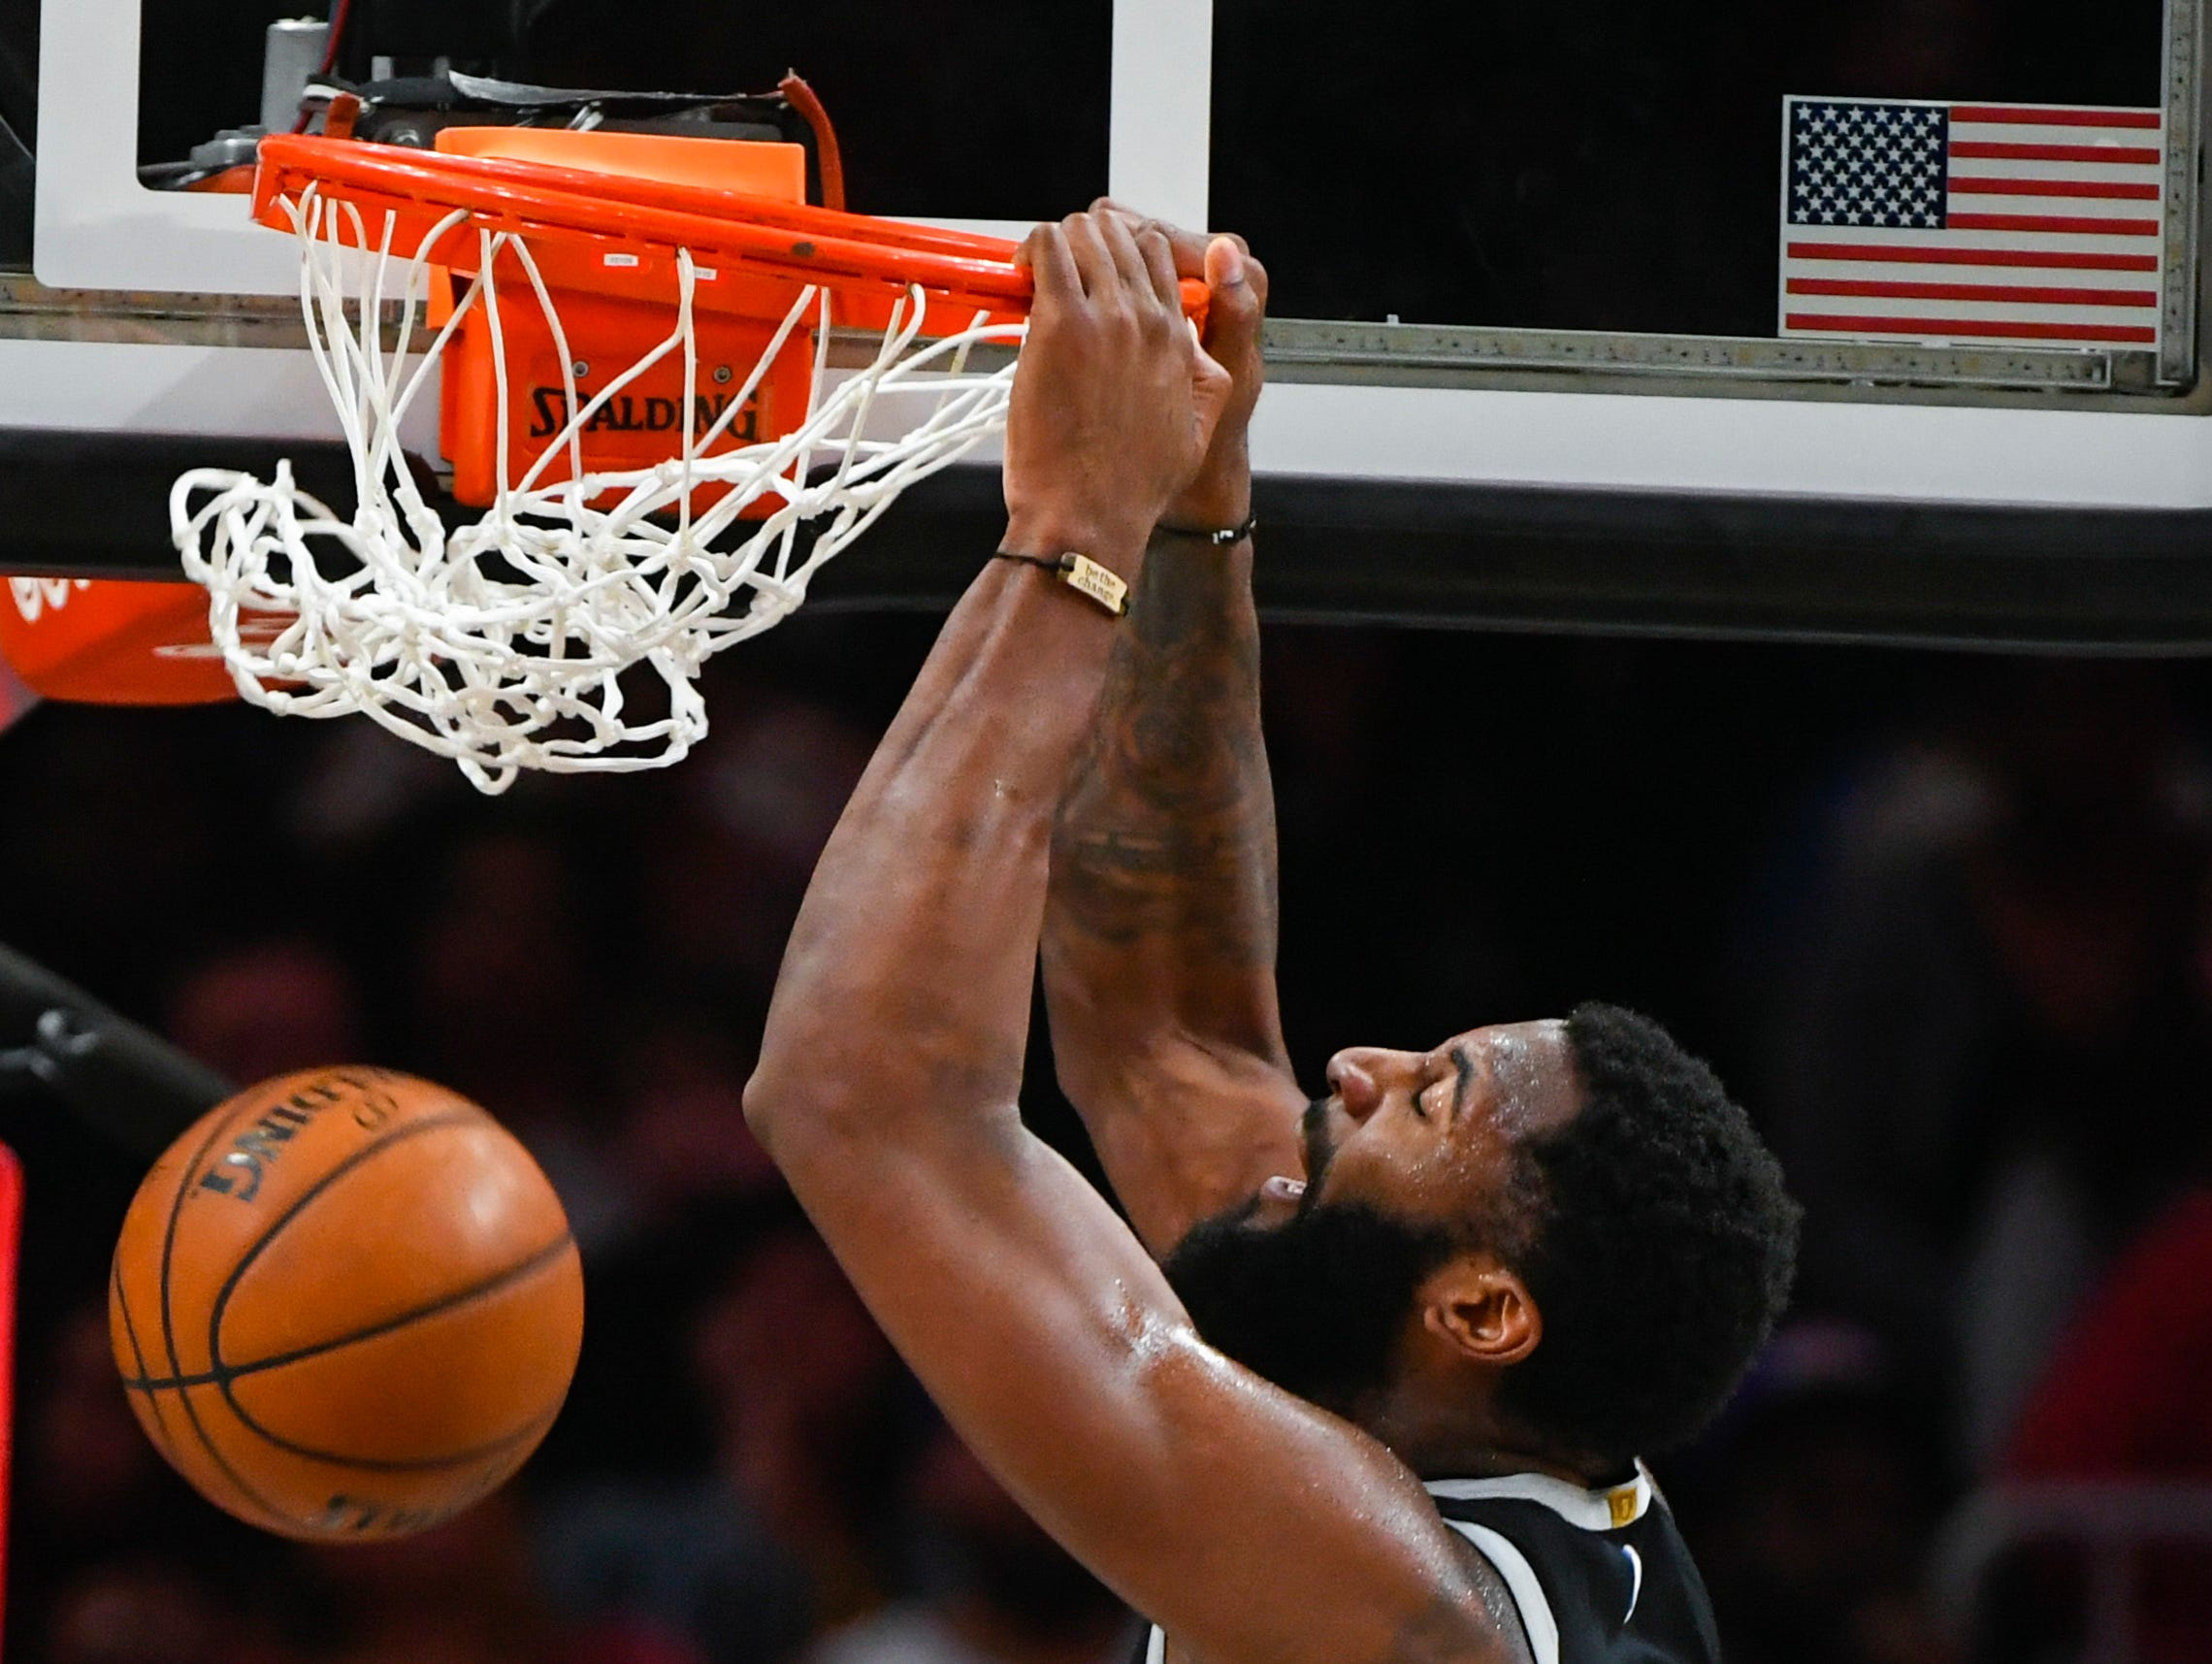 Detroit Pistons center Andre Drummond dunks against the Atlanta Hawks during the first half of an NBA basketball game, Friday, Feb. 22, 2019, in Atlanta.